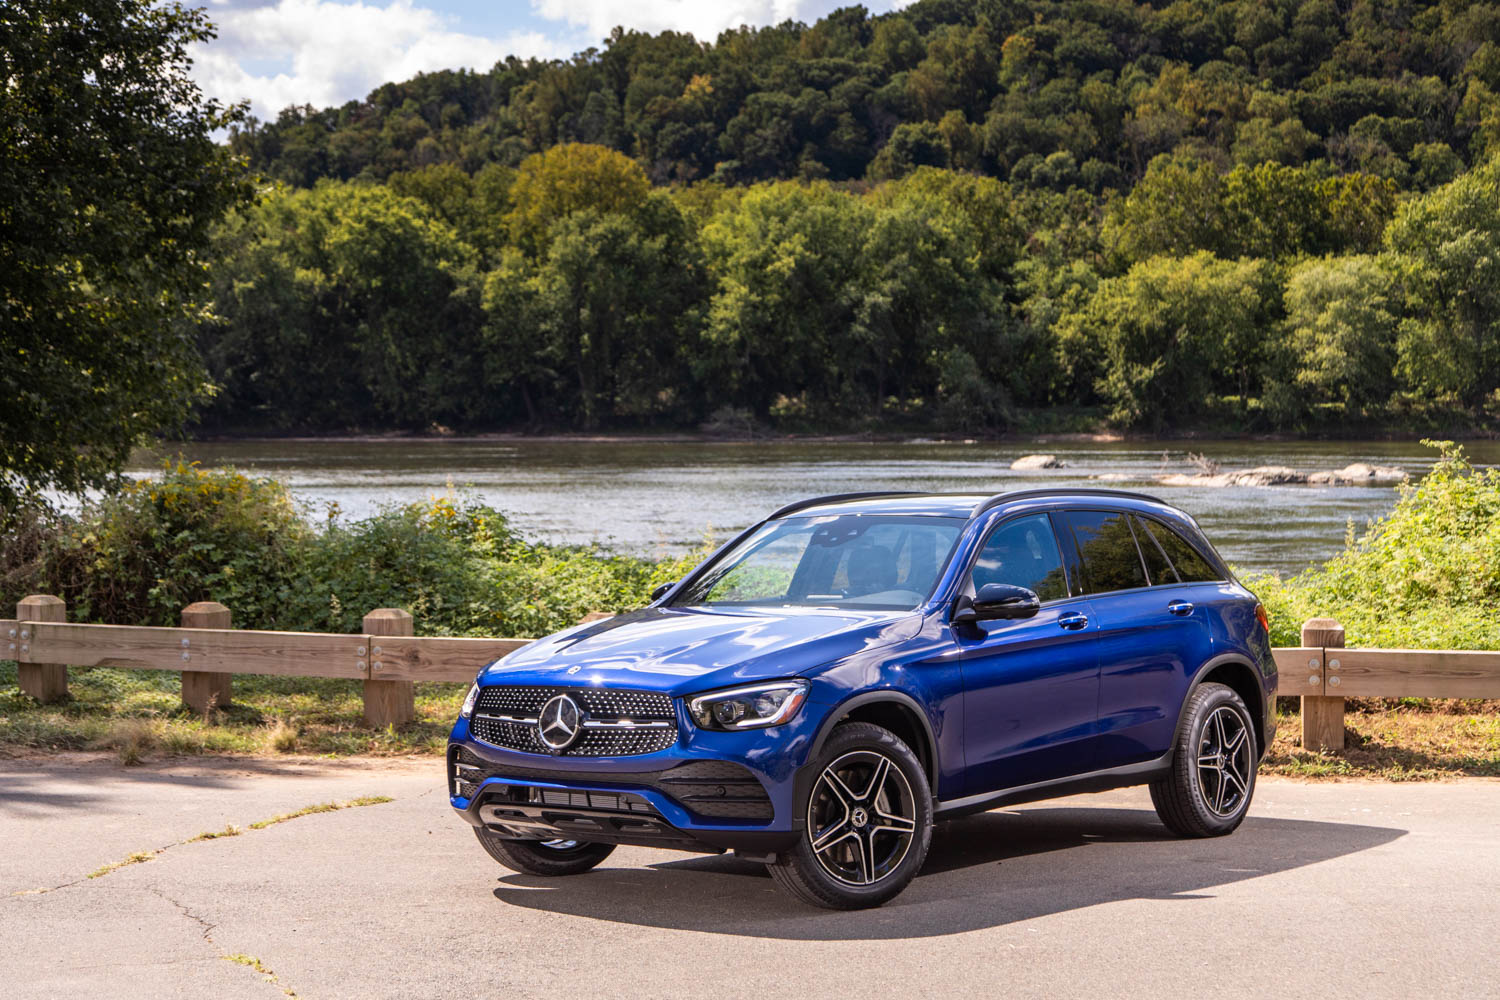 The refreshed 2020 Mercedes-Benz GLC is as posh and peppy as ever thumbnail